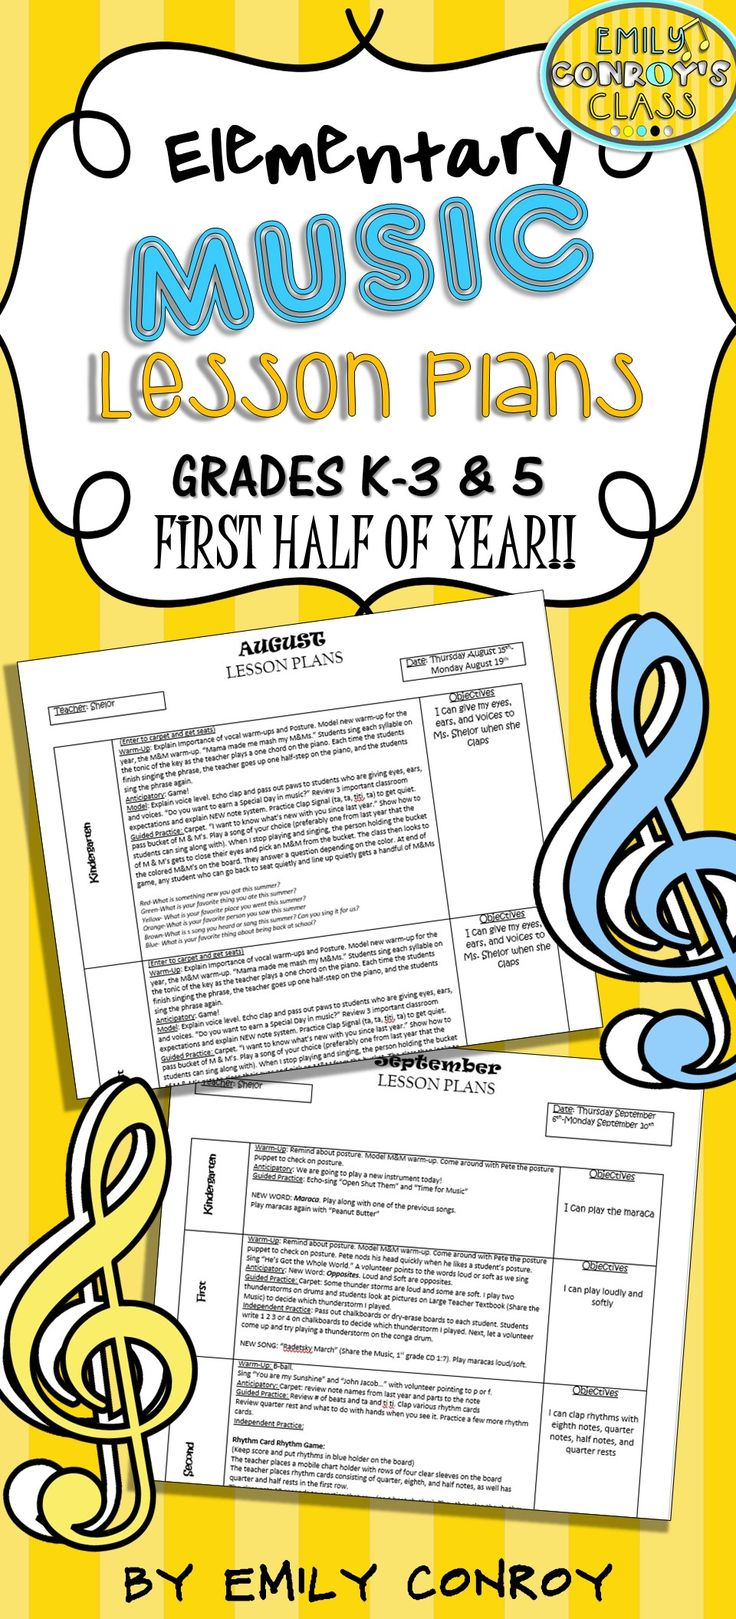 Elementary Music Lessons Plans-These plans are creative and concise and cover the months August through December. They include lessons, games, and activity ideas for a variety of musical concepts!